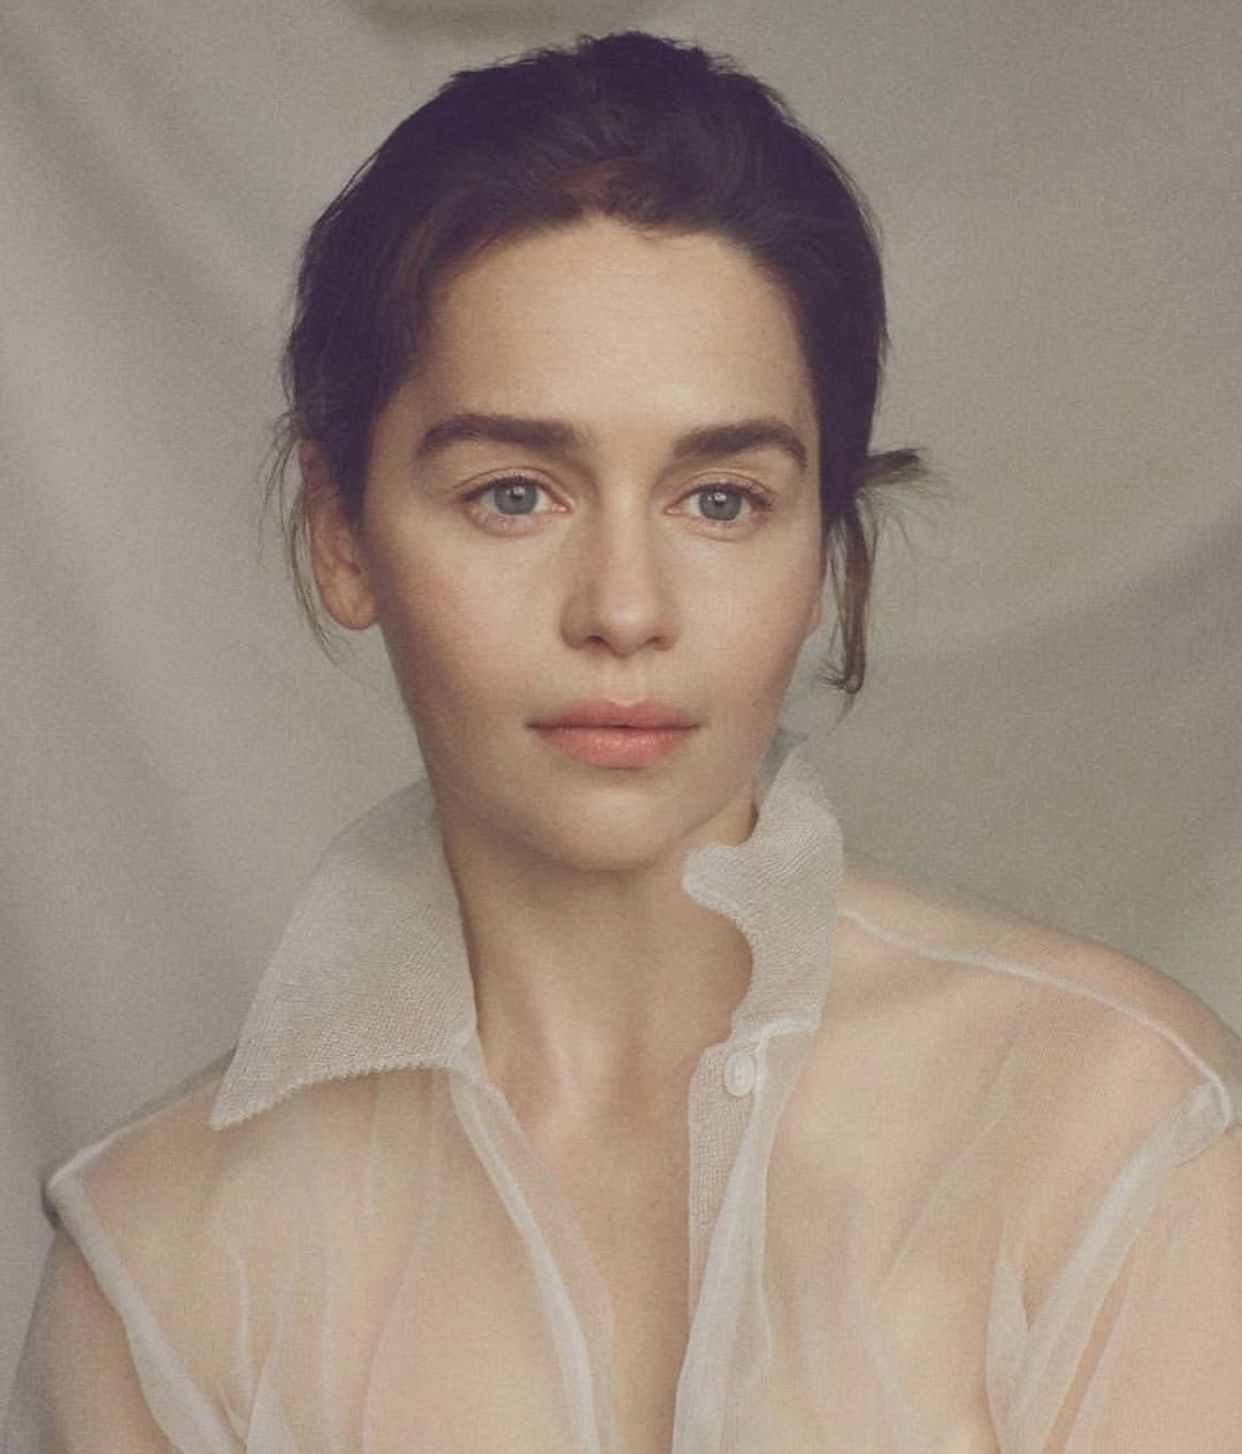 """Photo of Emilia Clarke, of """"Game of Thrones,"""" on Surviving Two Life-Threatening Aneurysms"""